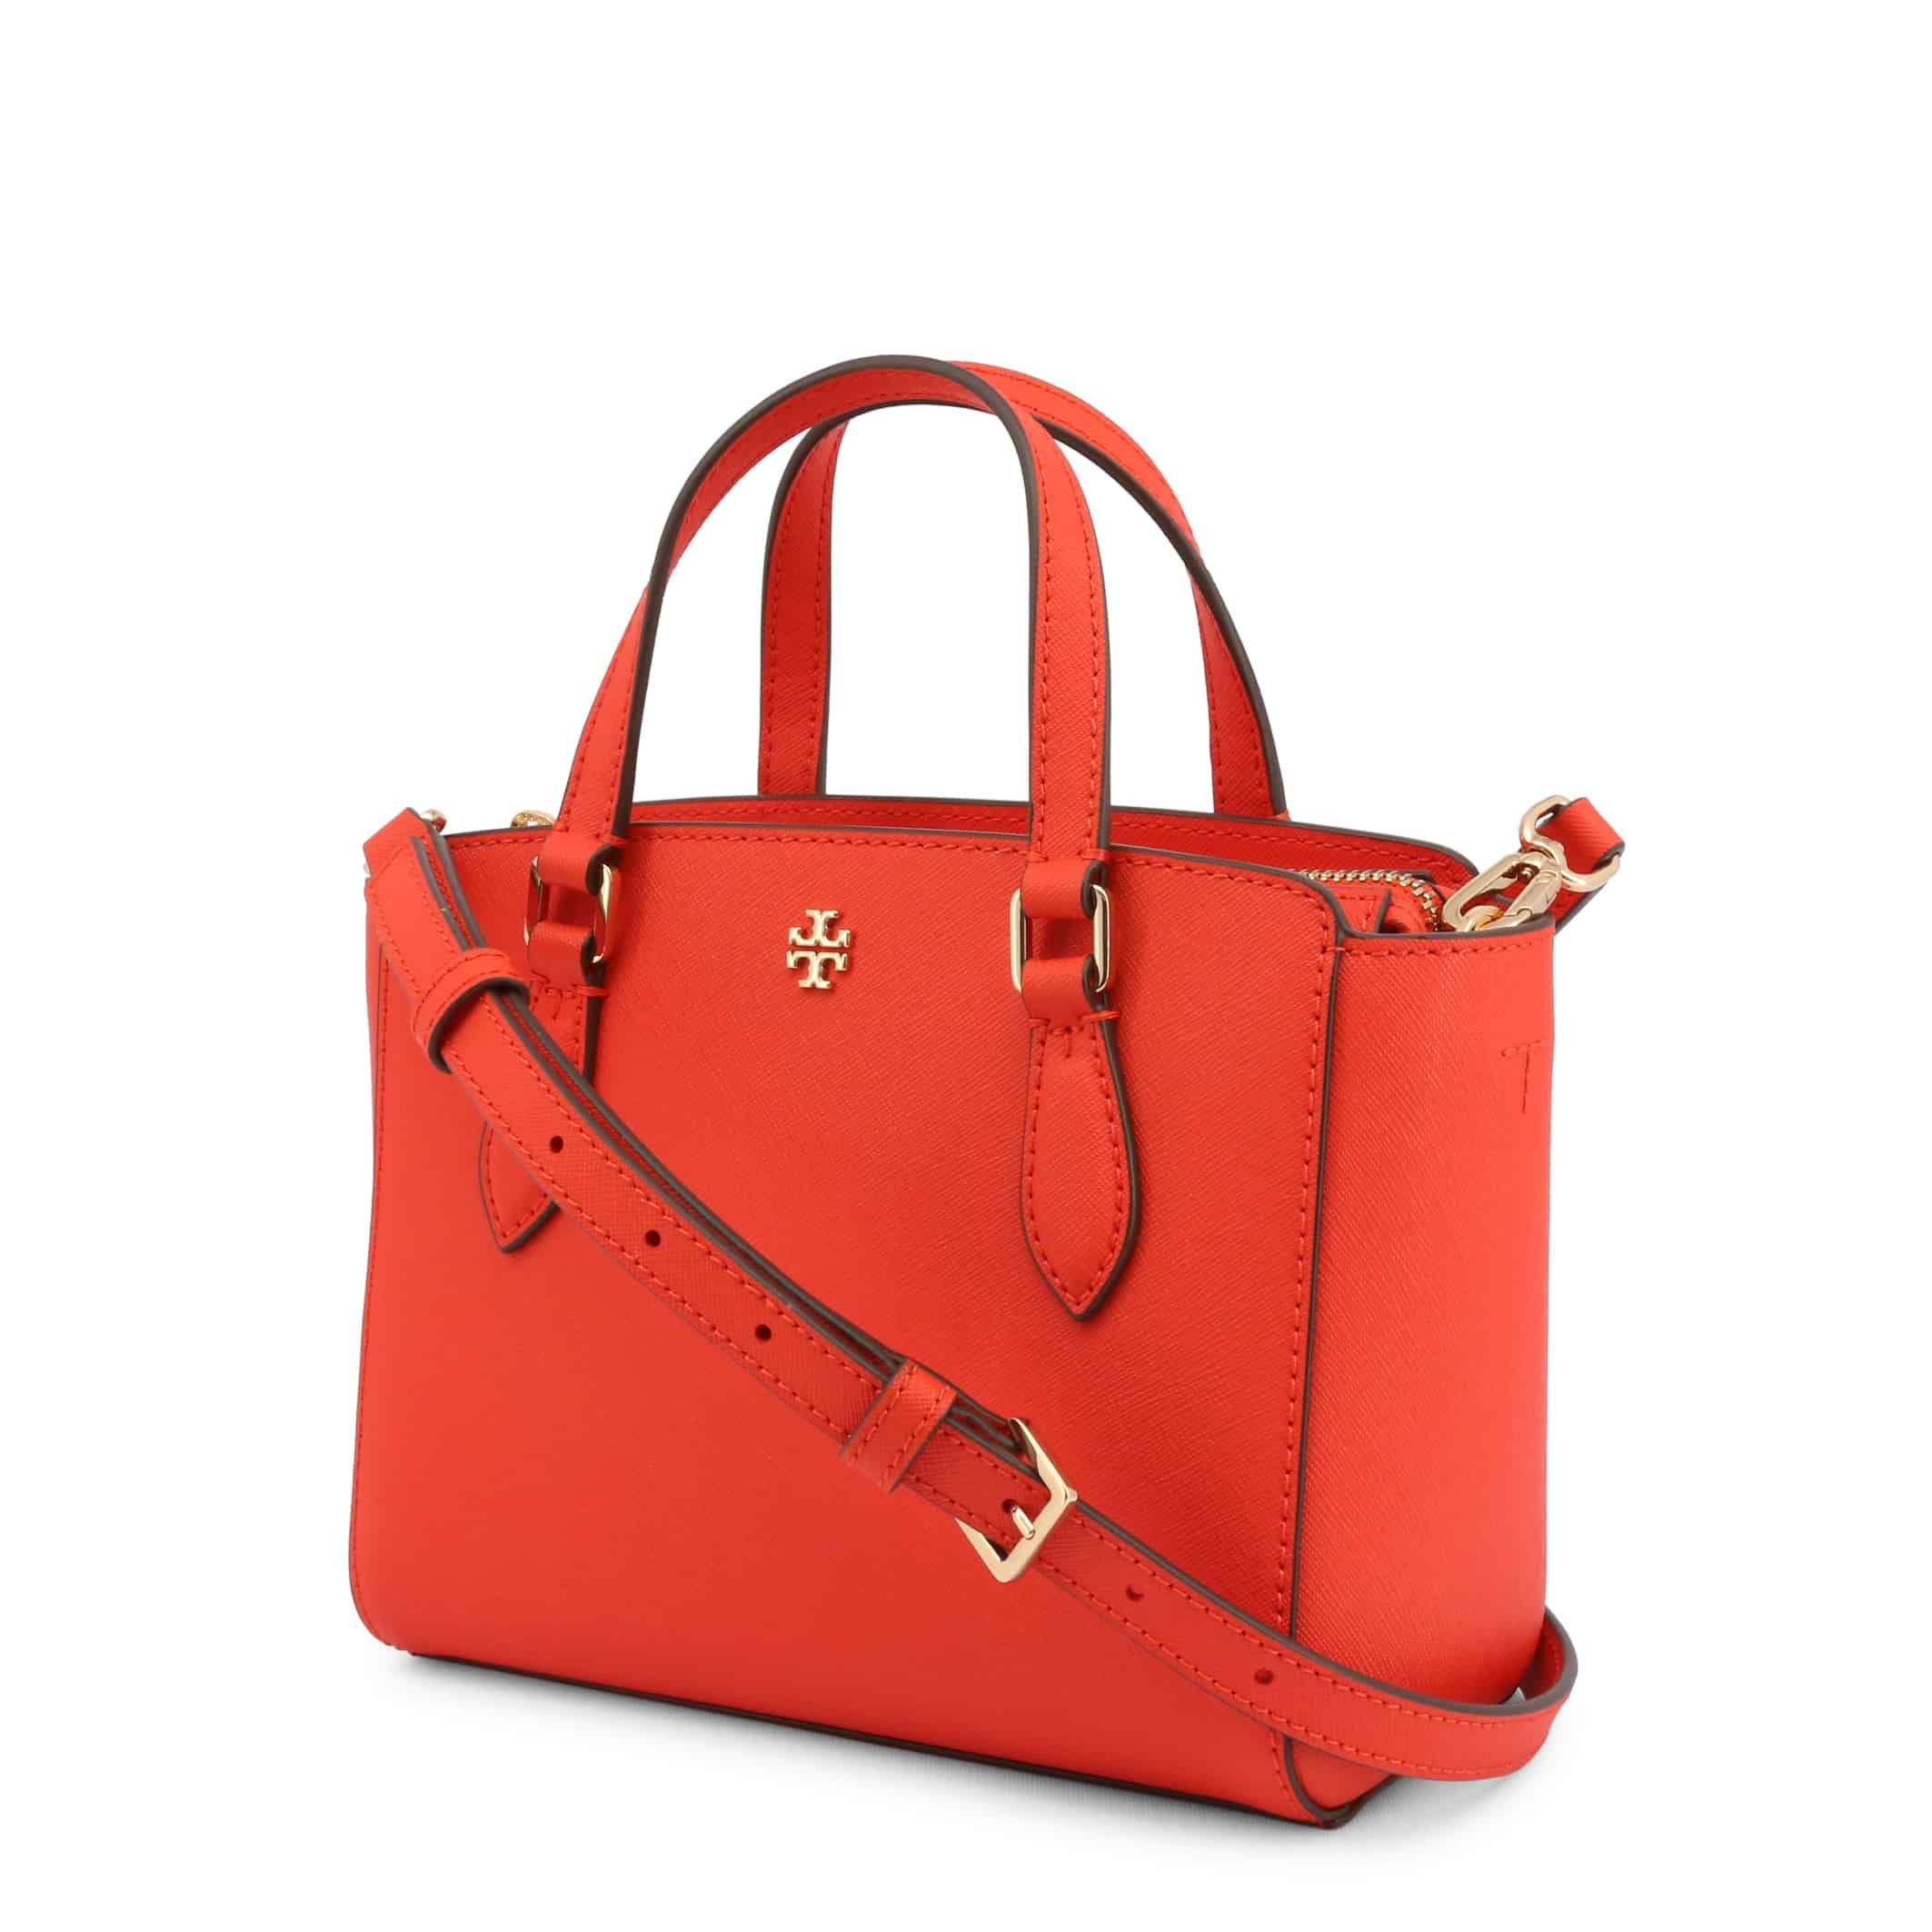 Tory Burch – 64189 – Rouge